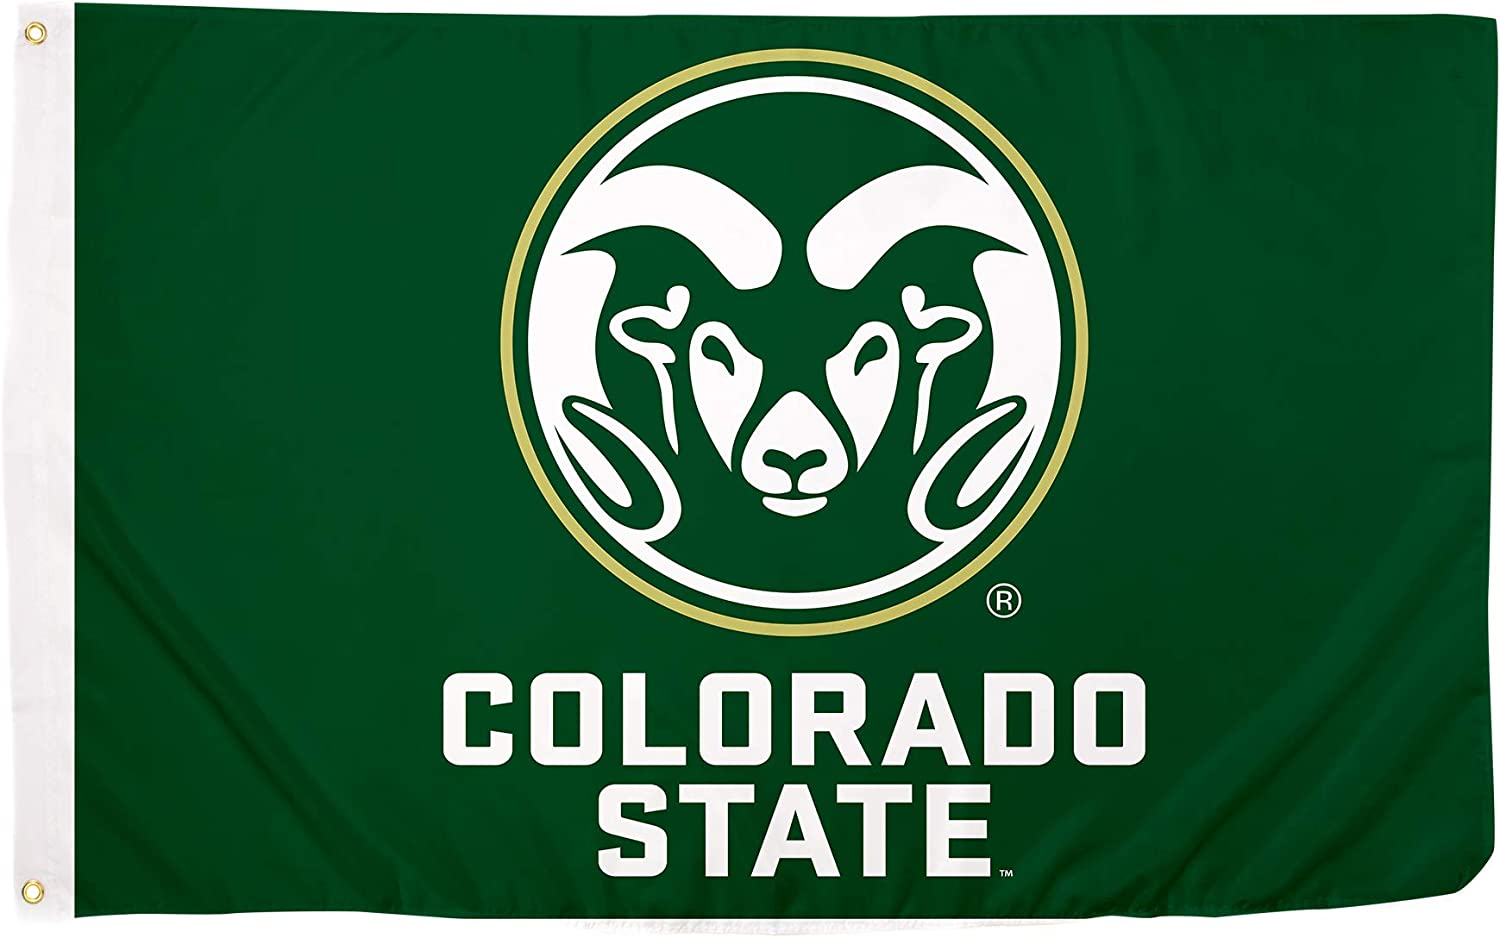 Desert Cactus Colorado State University CSU Rams NCAA 100% Polyester Indoor Outdoor 3 feet x 5 feet Flag